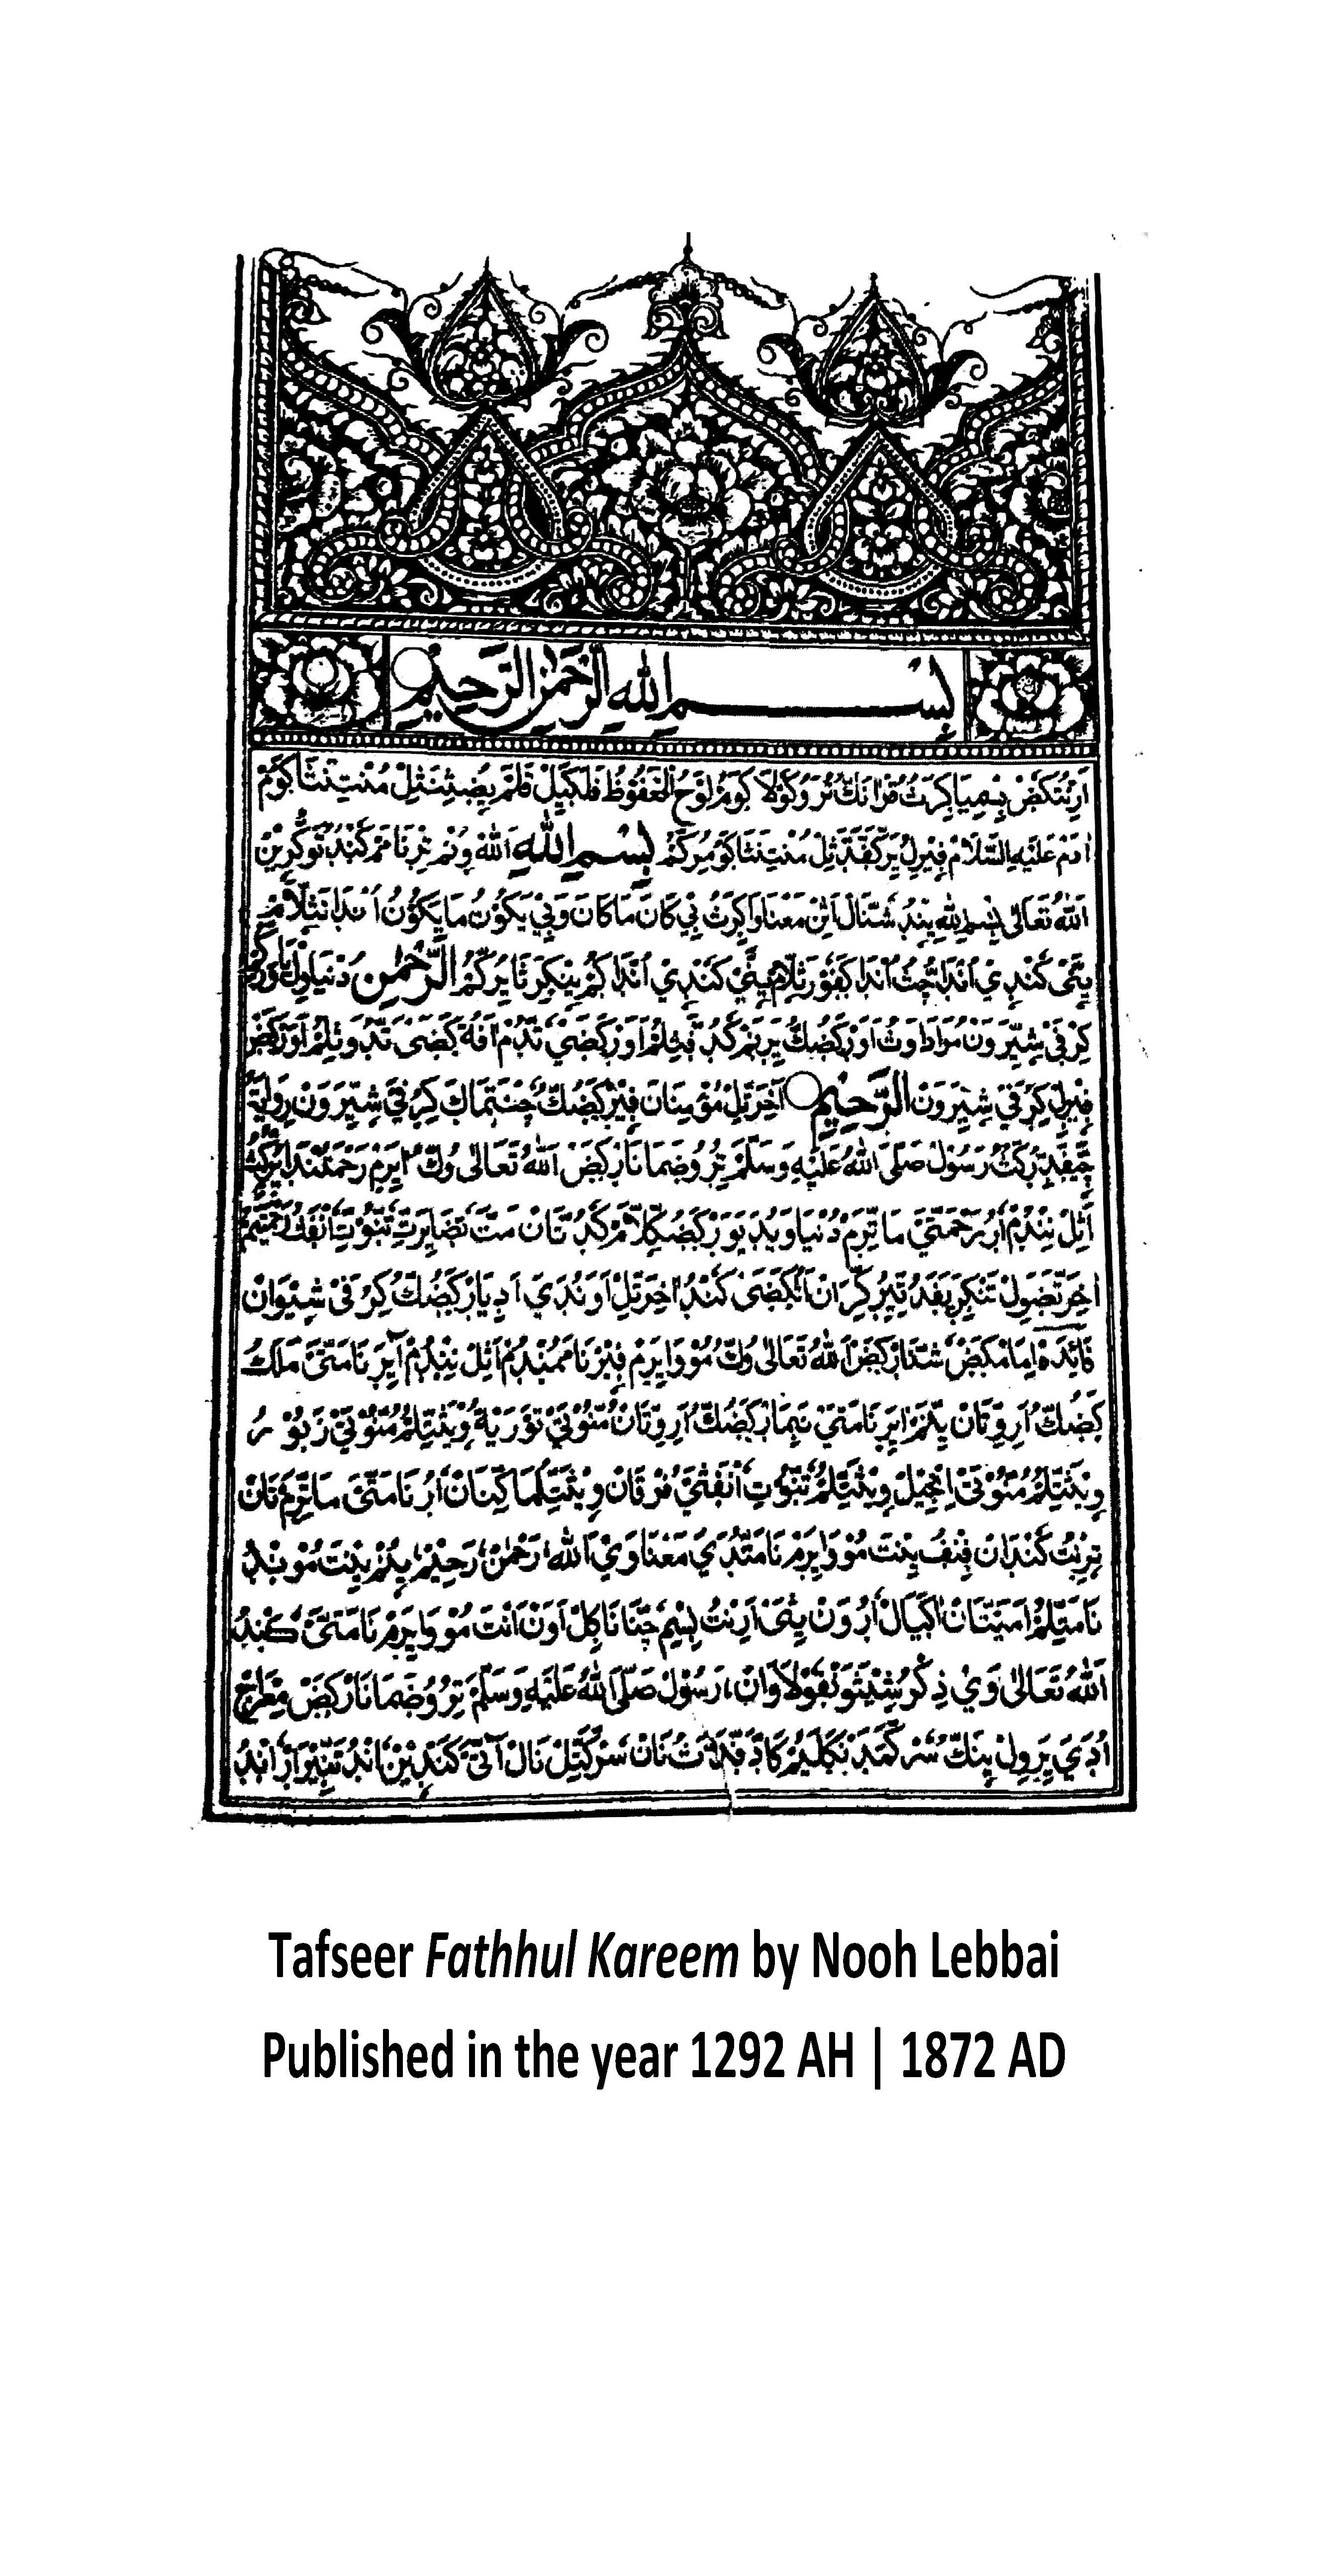 Arabu-Tamil language and literature provided a kind of platform to learn Islamic teachings. (Supplied)